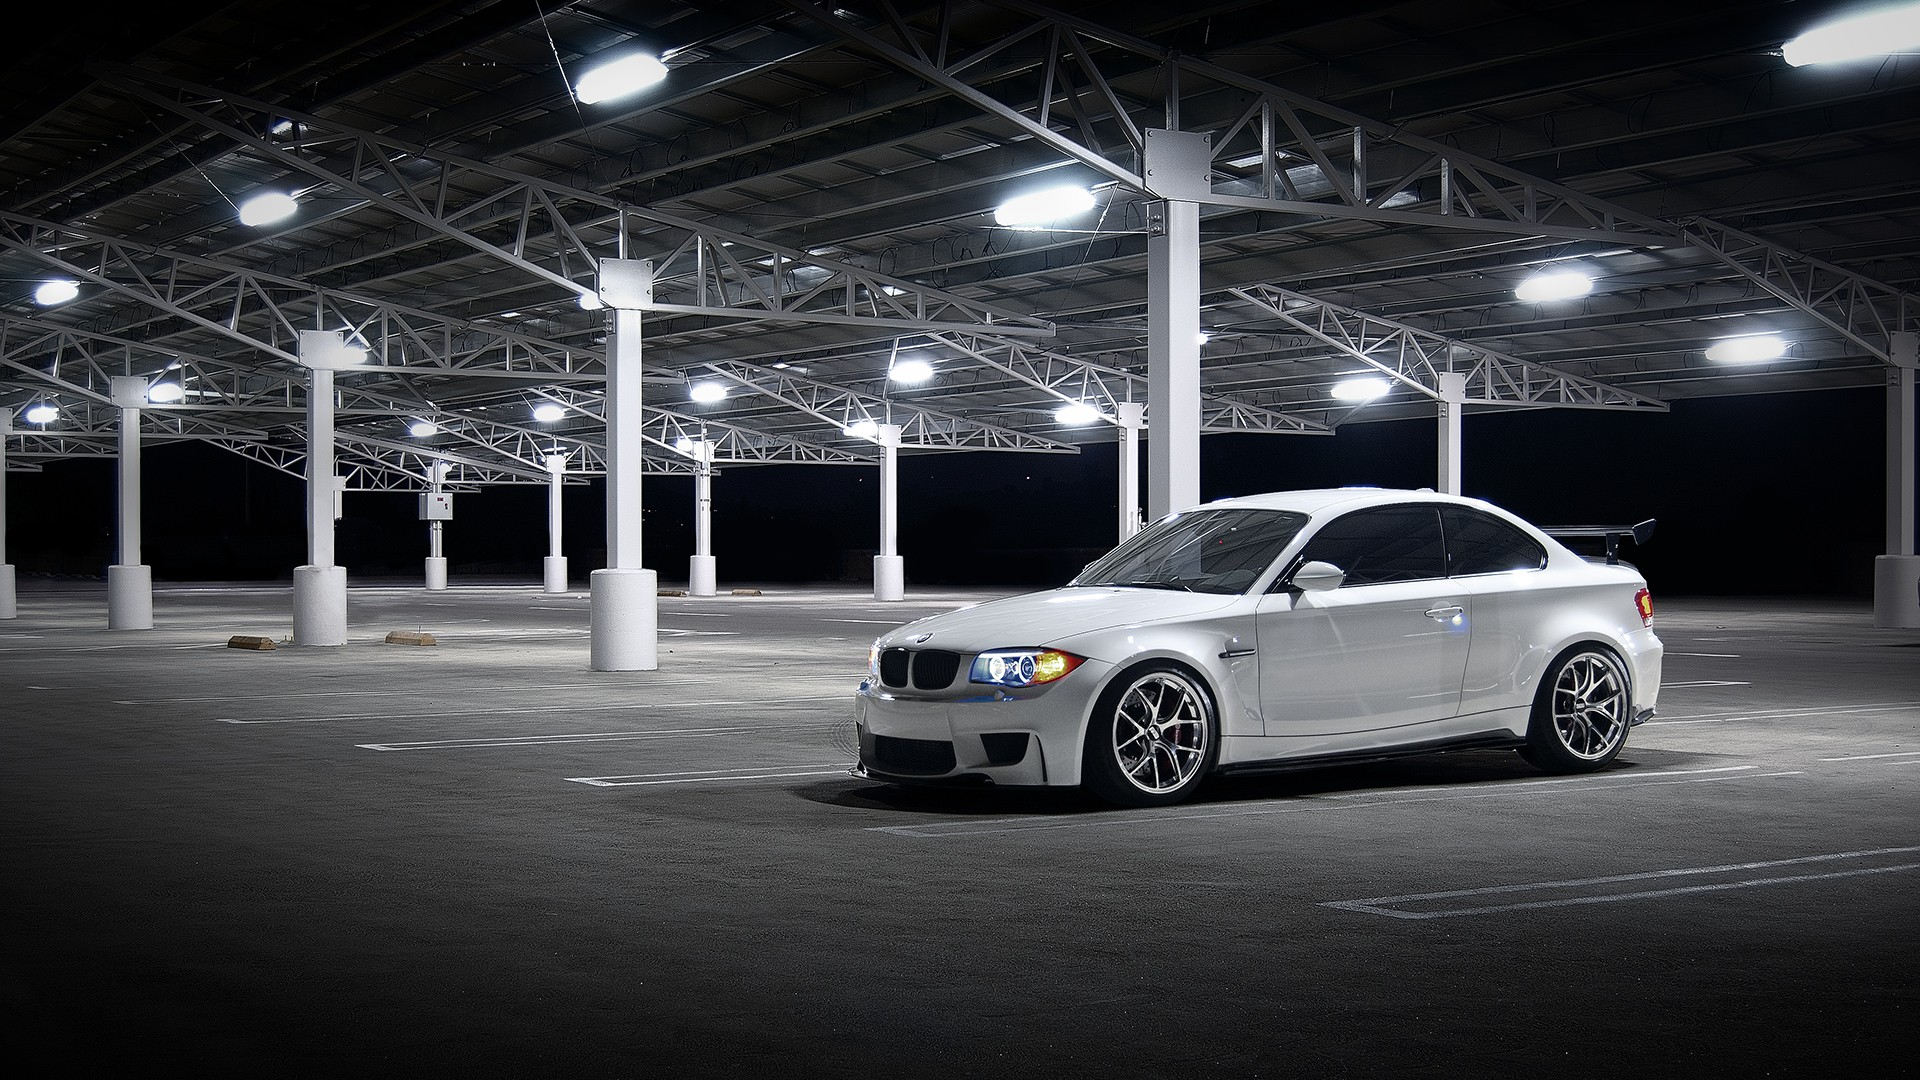 BMW 135i Wallpaper 04   [1920x1080] 1920x1080